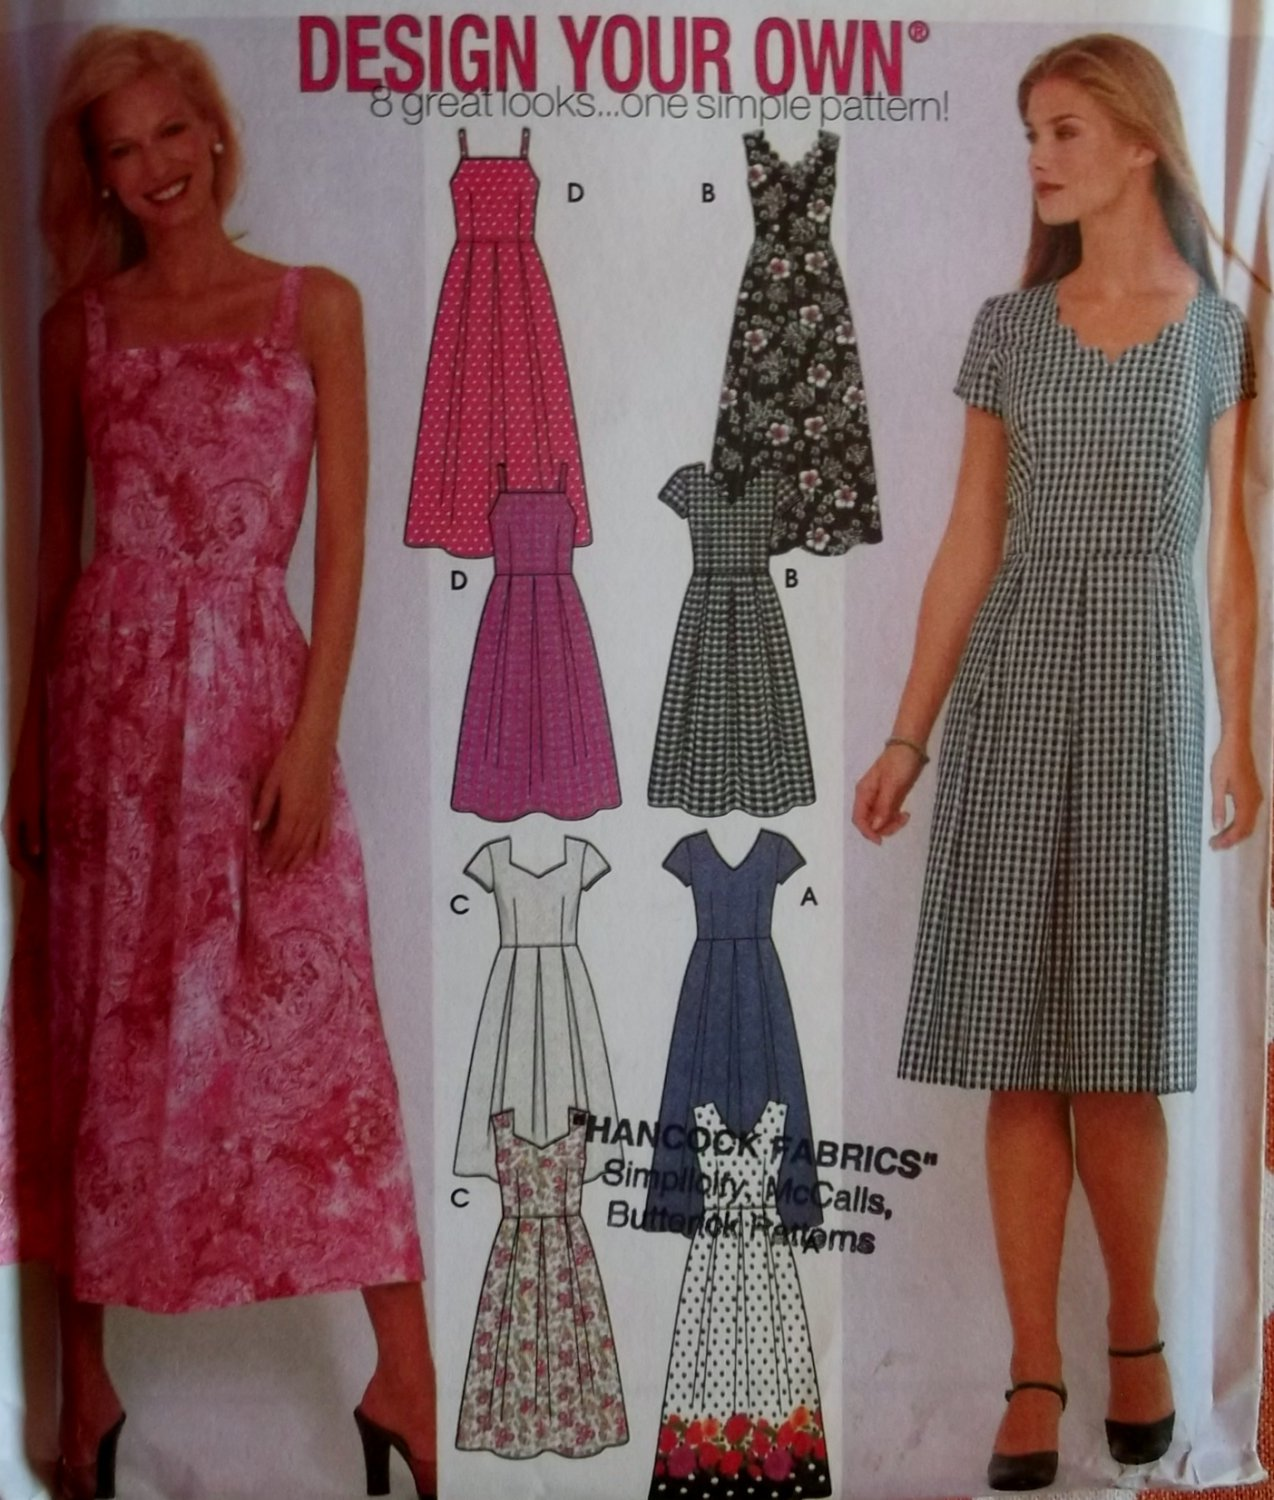 Make Your Own Dress Design: Misses Design Your Own Dress In 2 Lengths Pattern